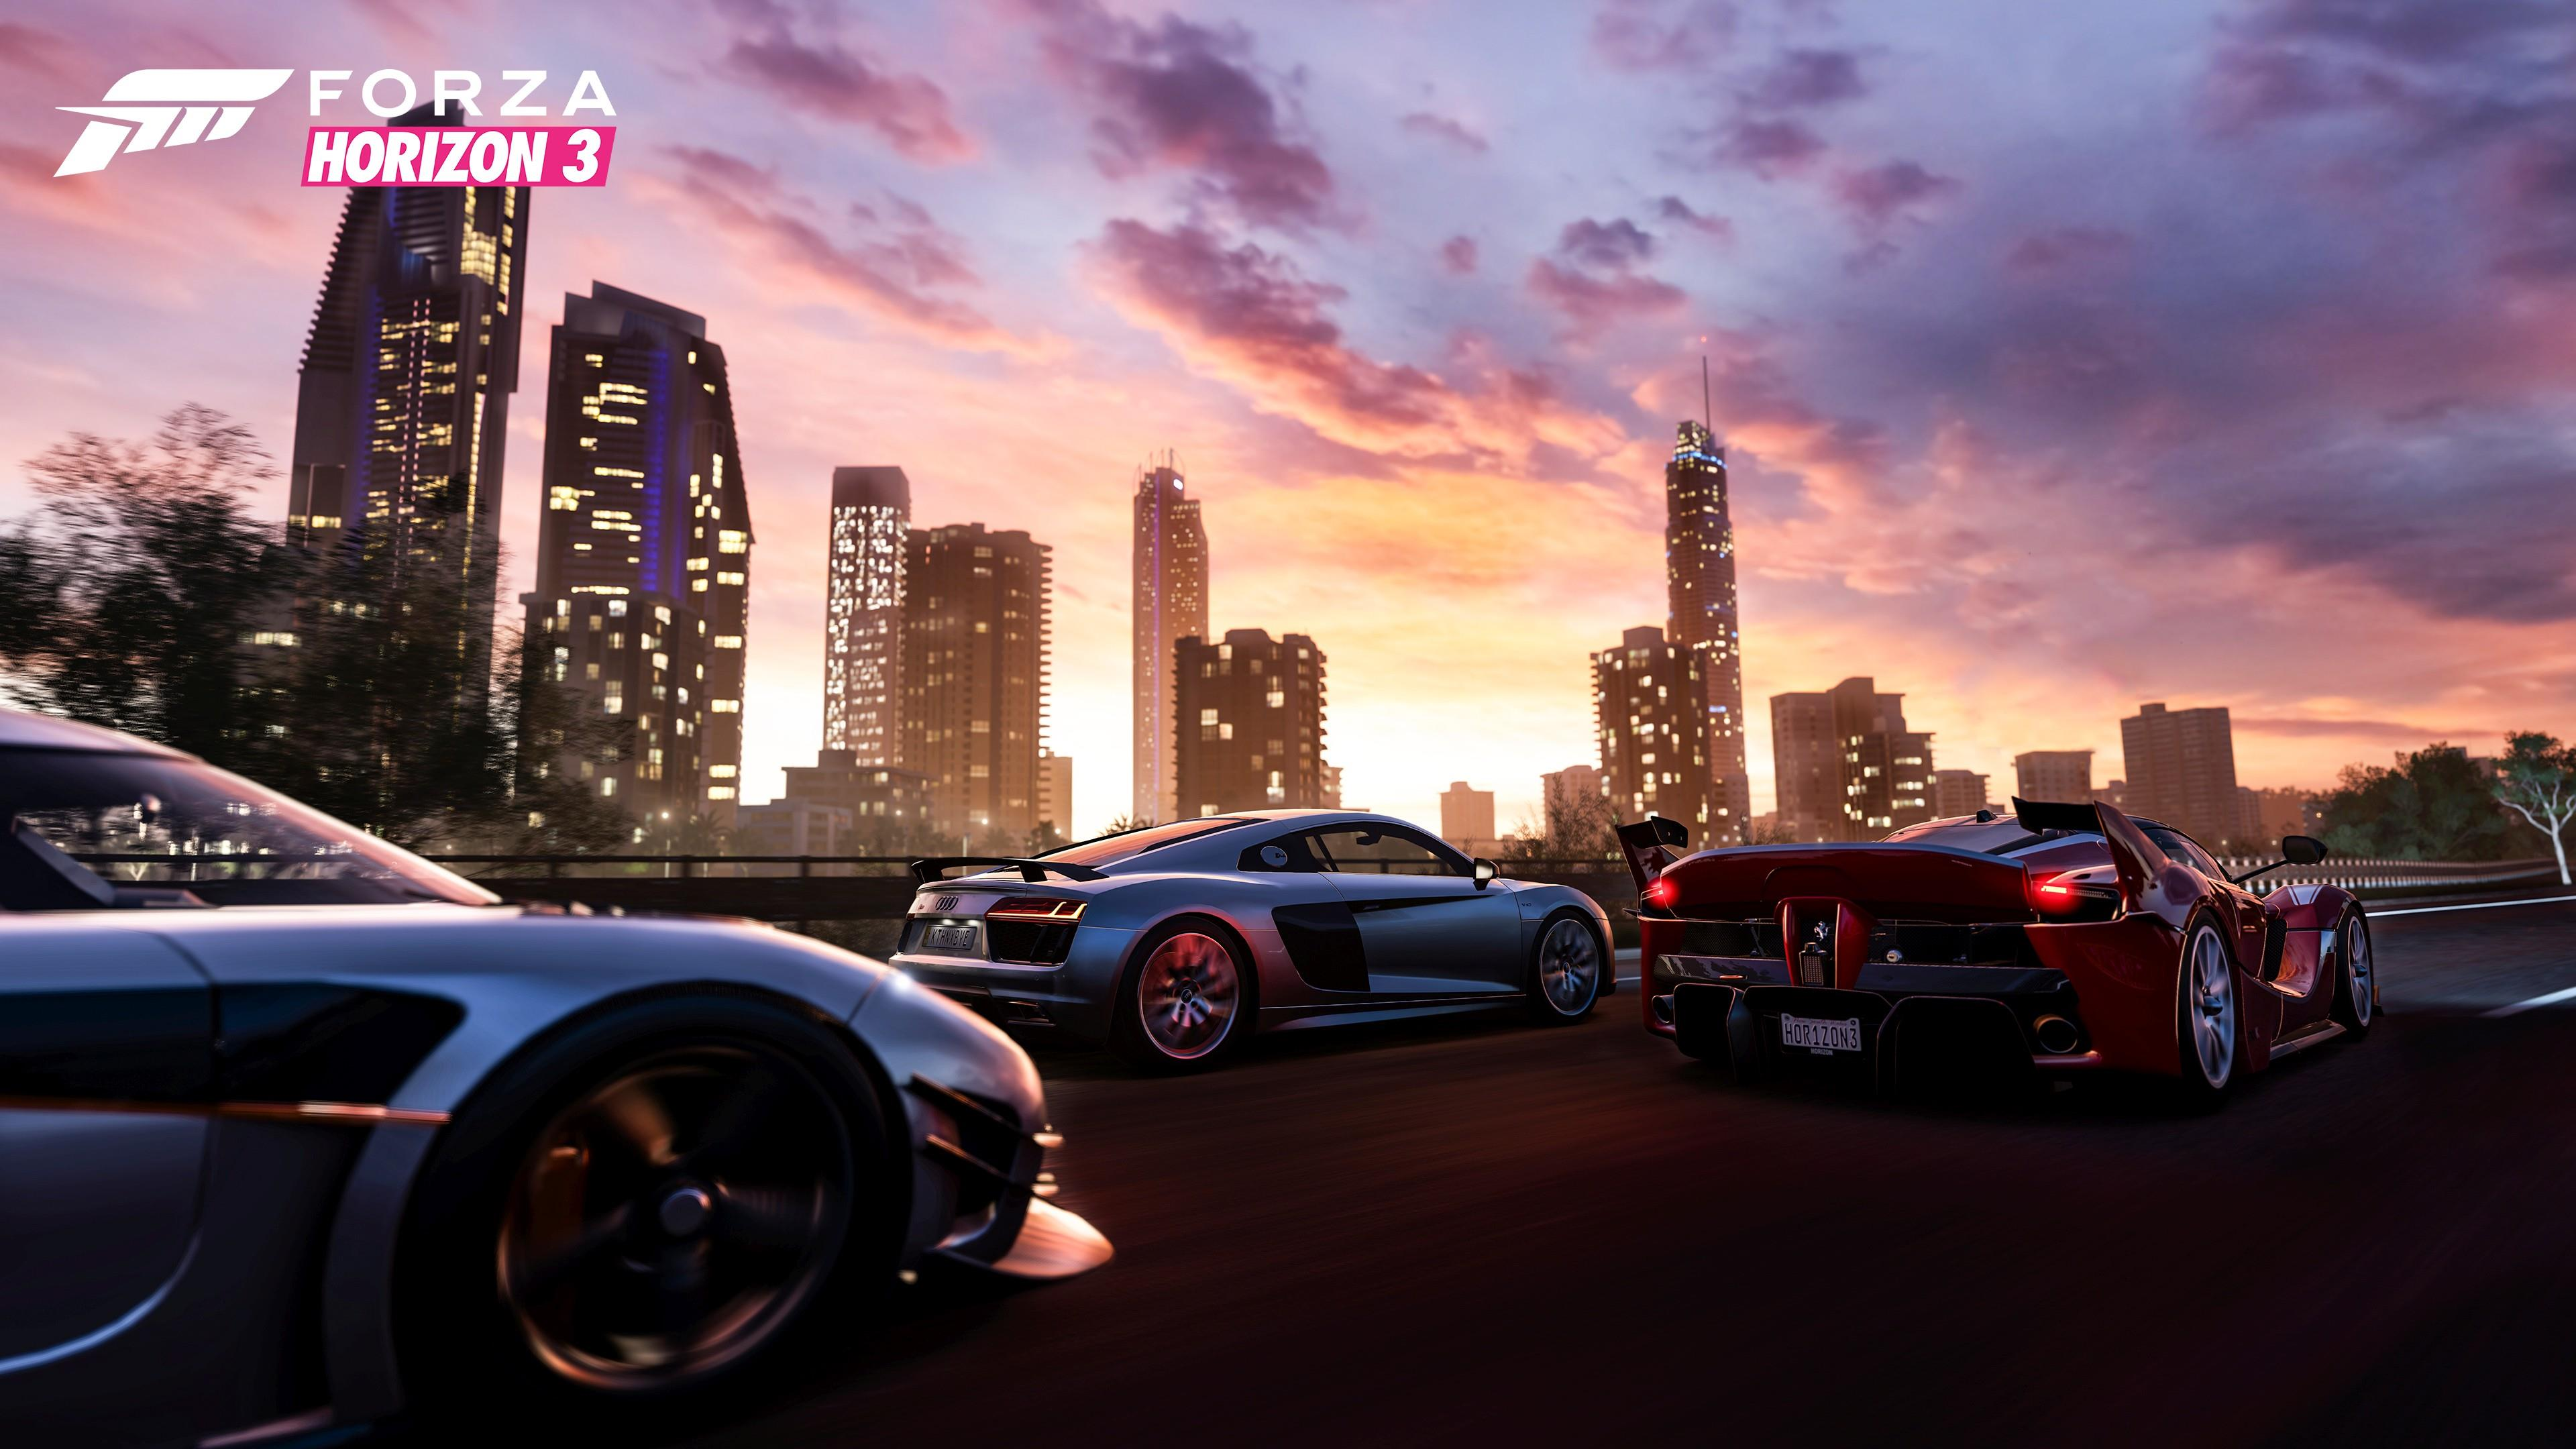 forza-horizon-3-screenshot- (4)